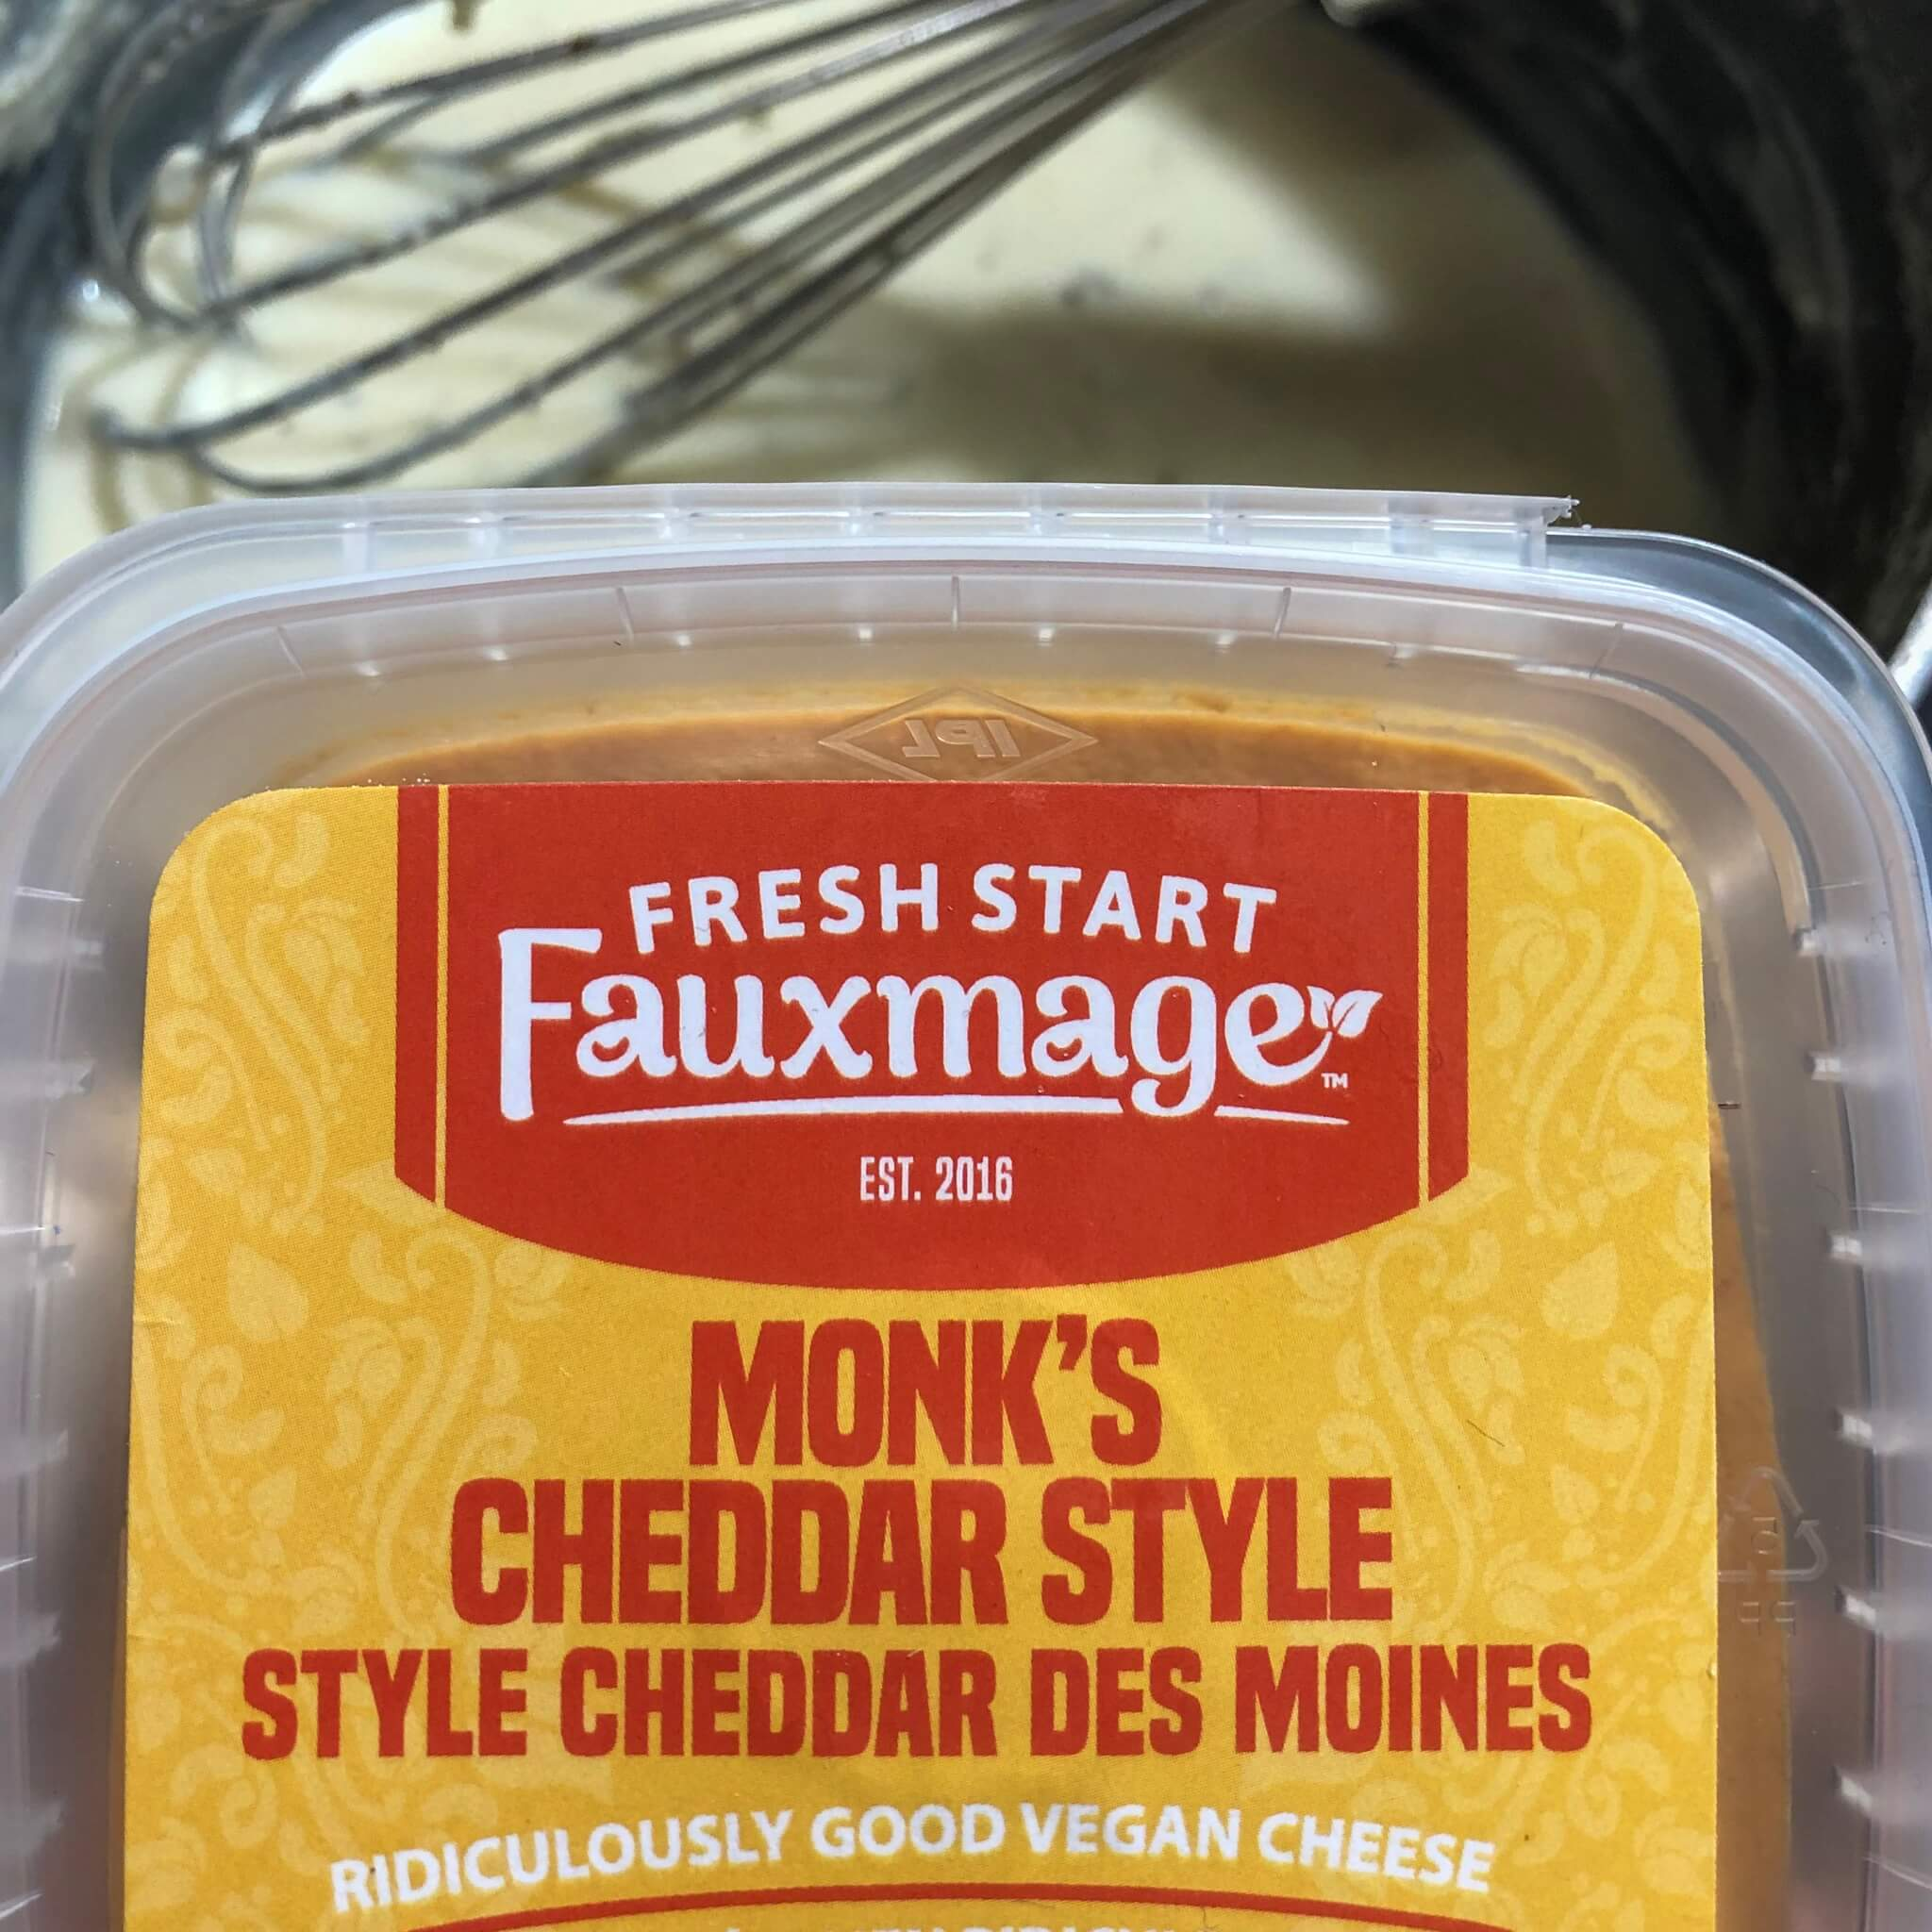 fresh start fauxmage monk's cheddar cheese